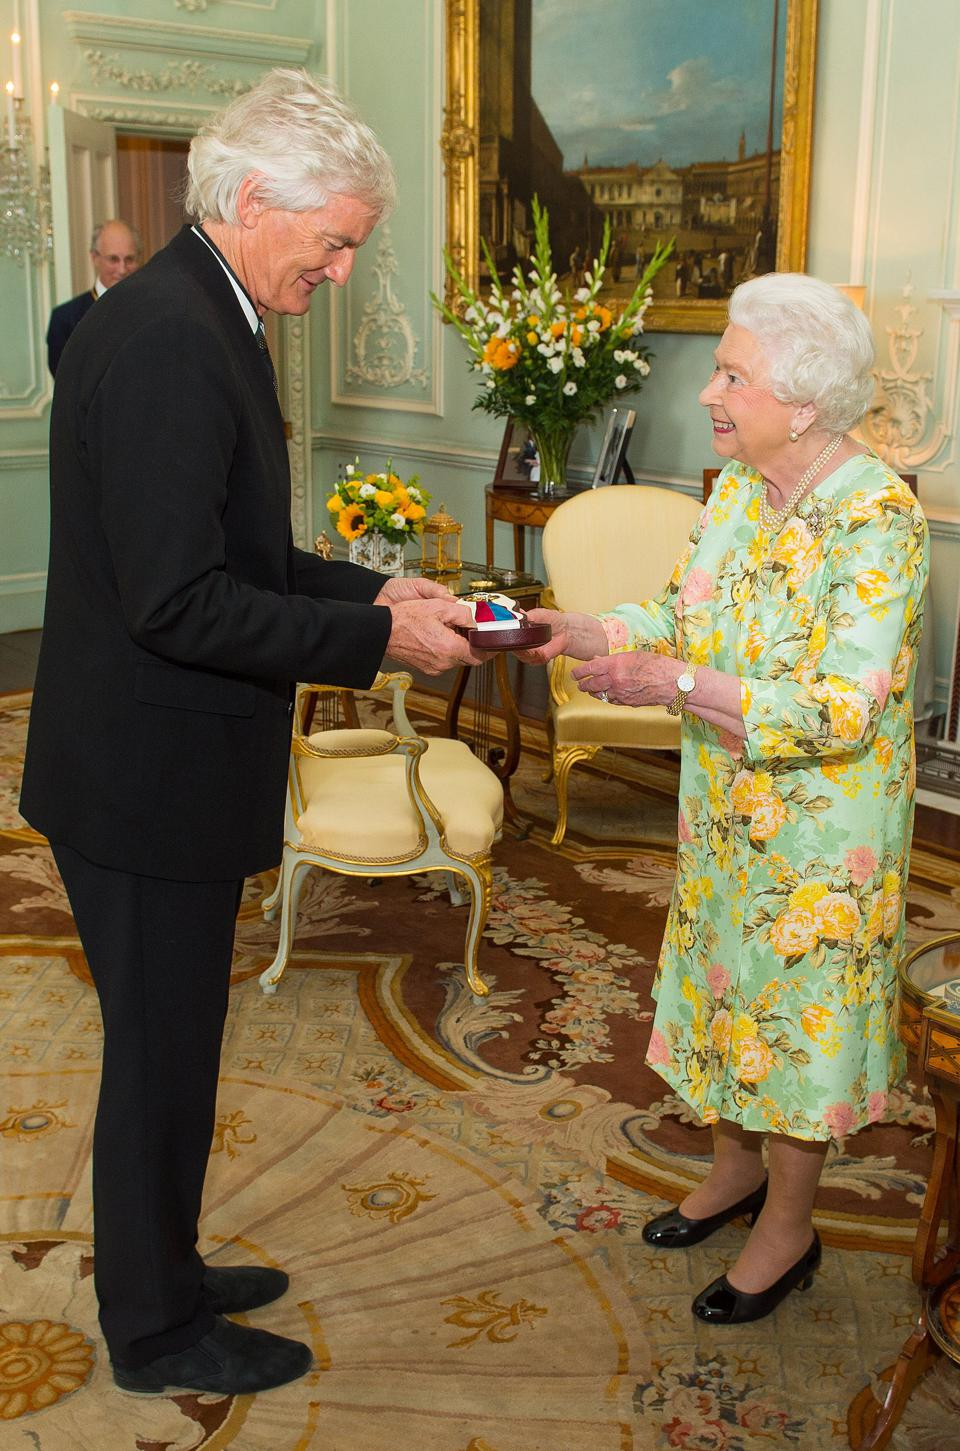 BRITAIN-ROYALS-AWARD